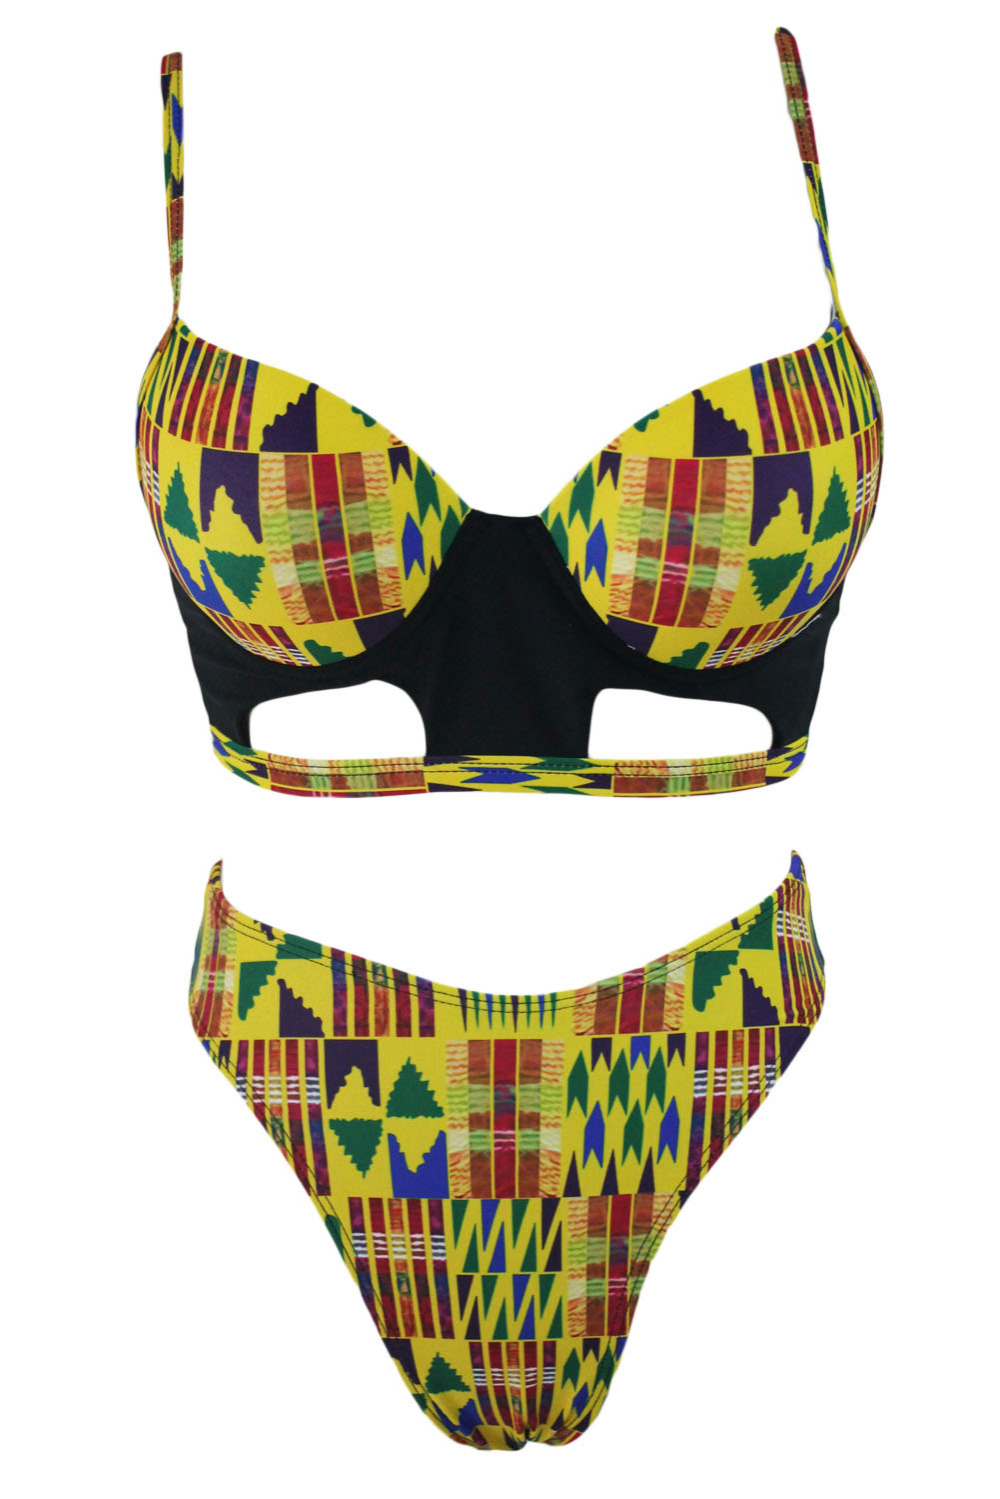 Yellowish-African-Print-Cut-out-High-Waist-Swimsuit-LC410104-7-2